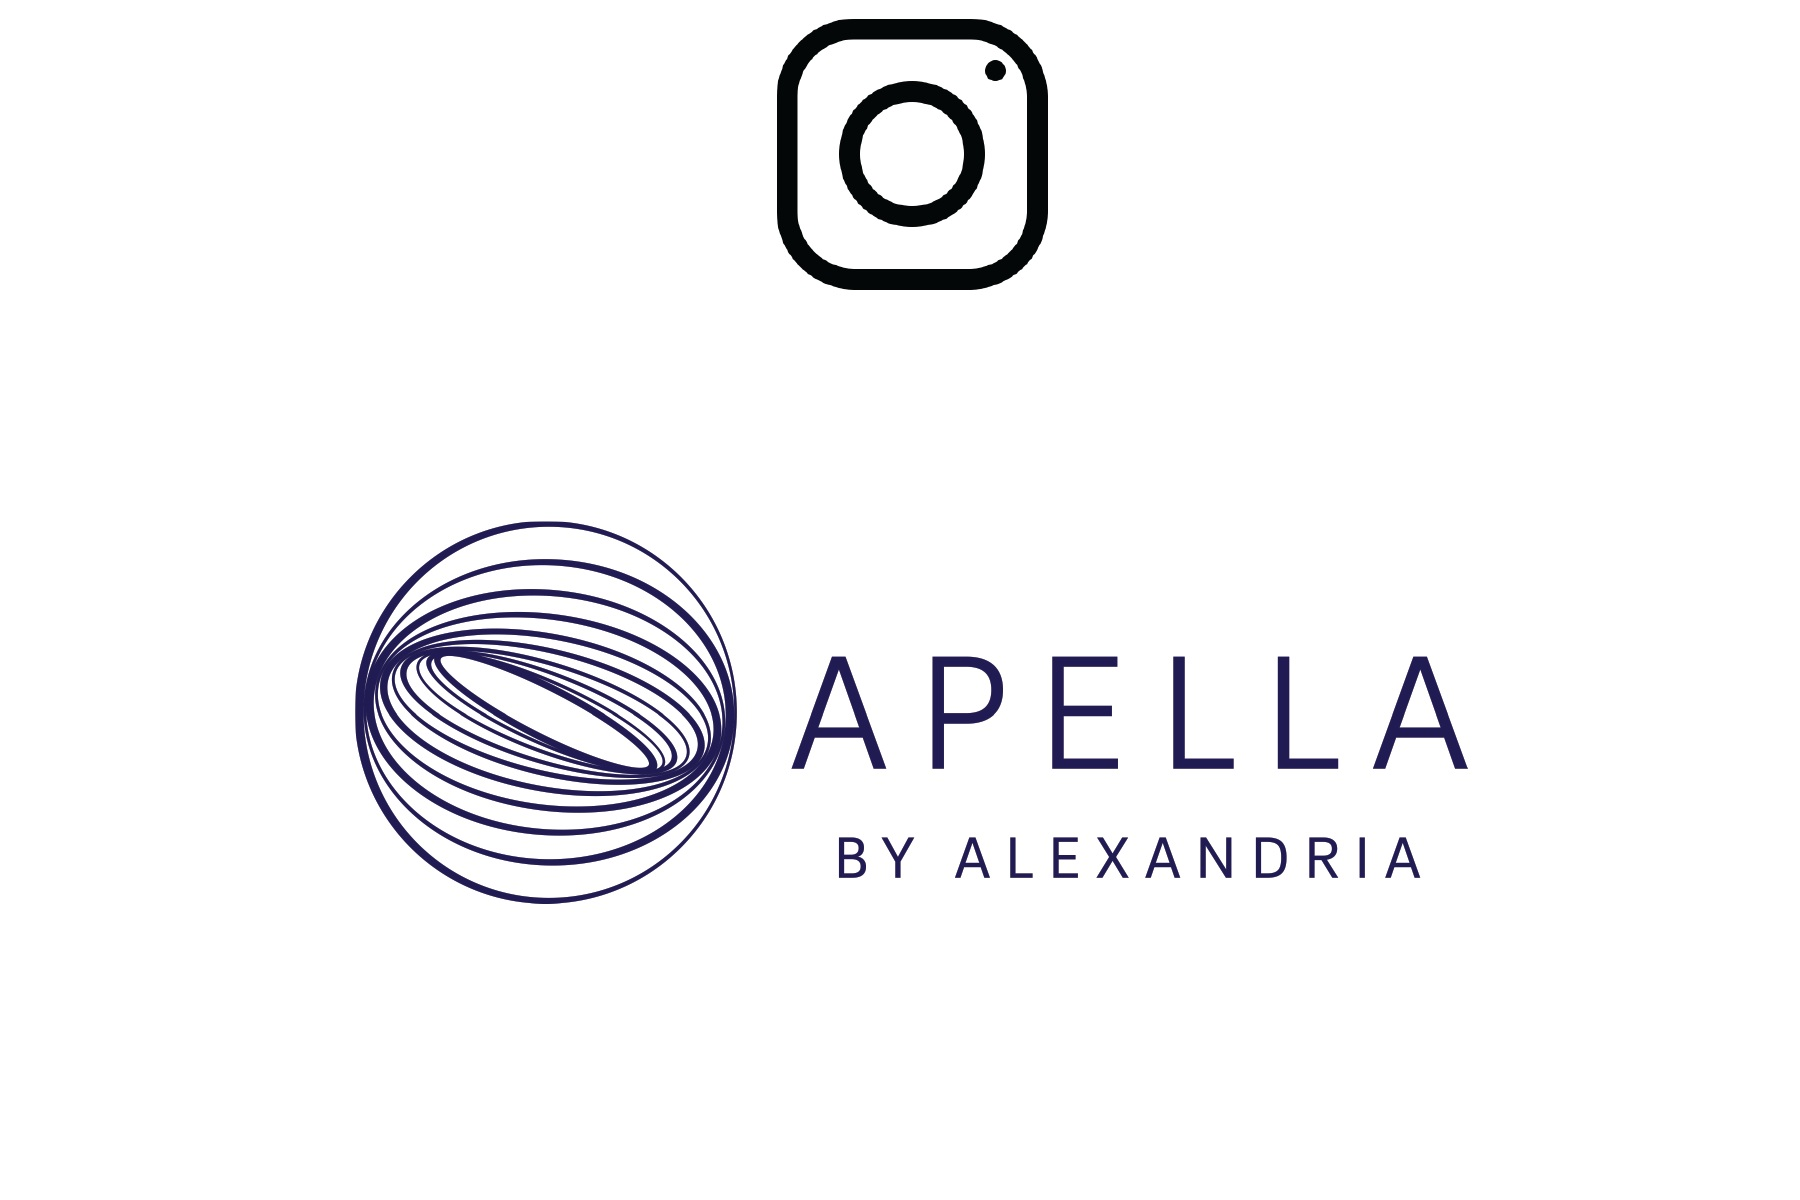 Image of Apella by Alexandria logo with redirect to instagram page when clicked